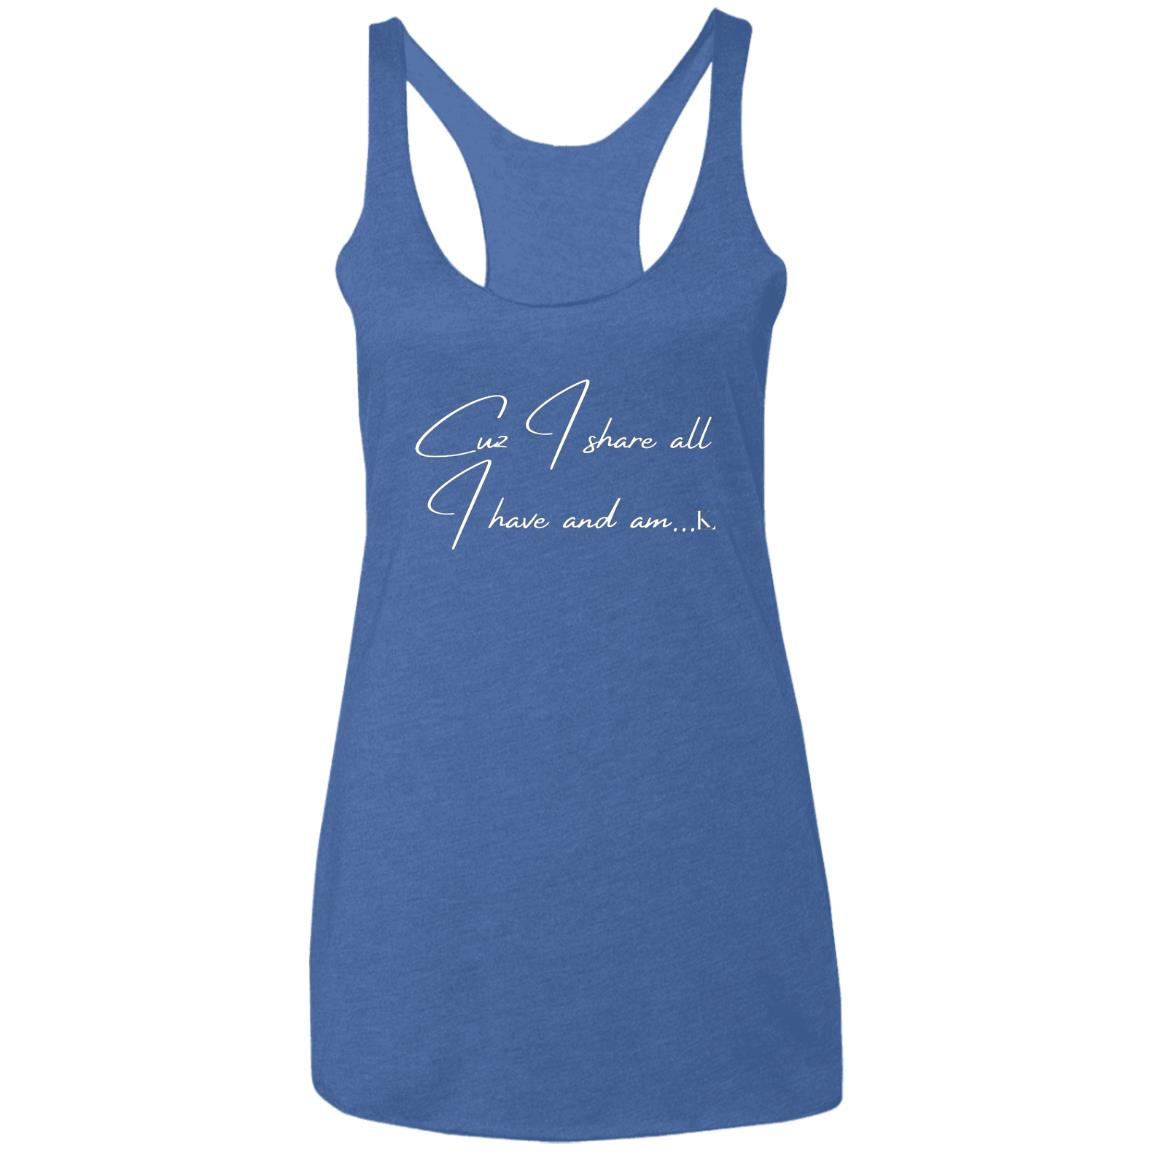 Cuz I Share All I Have And Am... Women's Racerback Tank